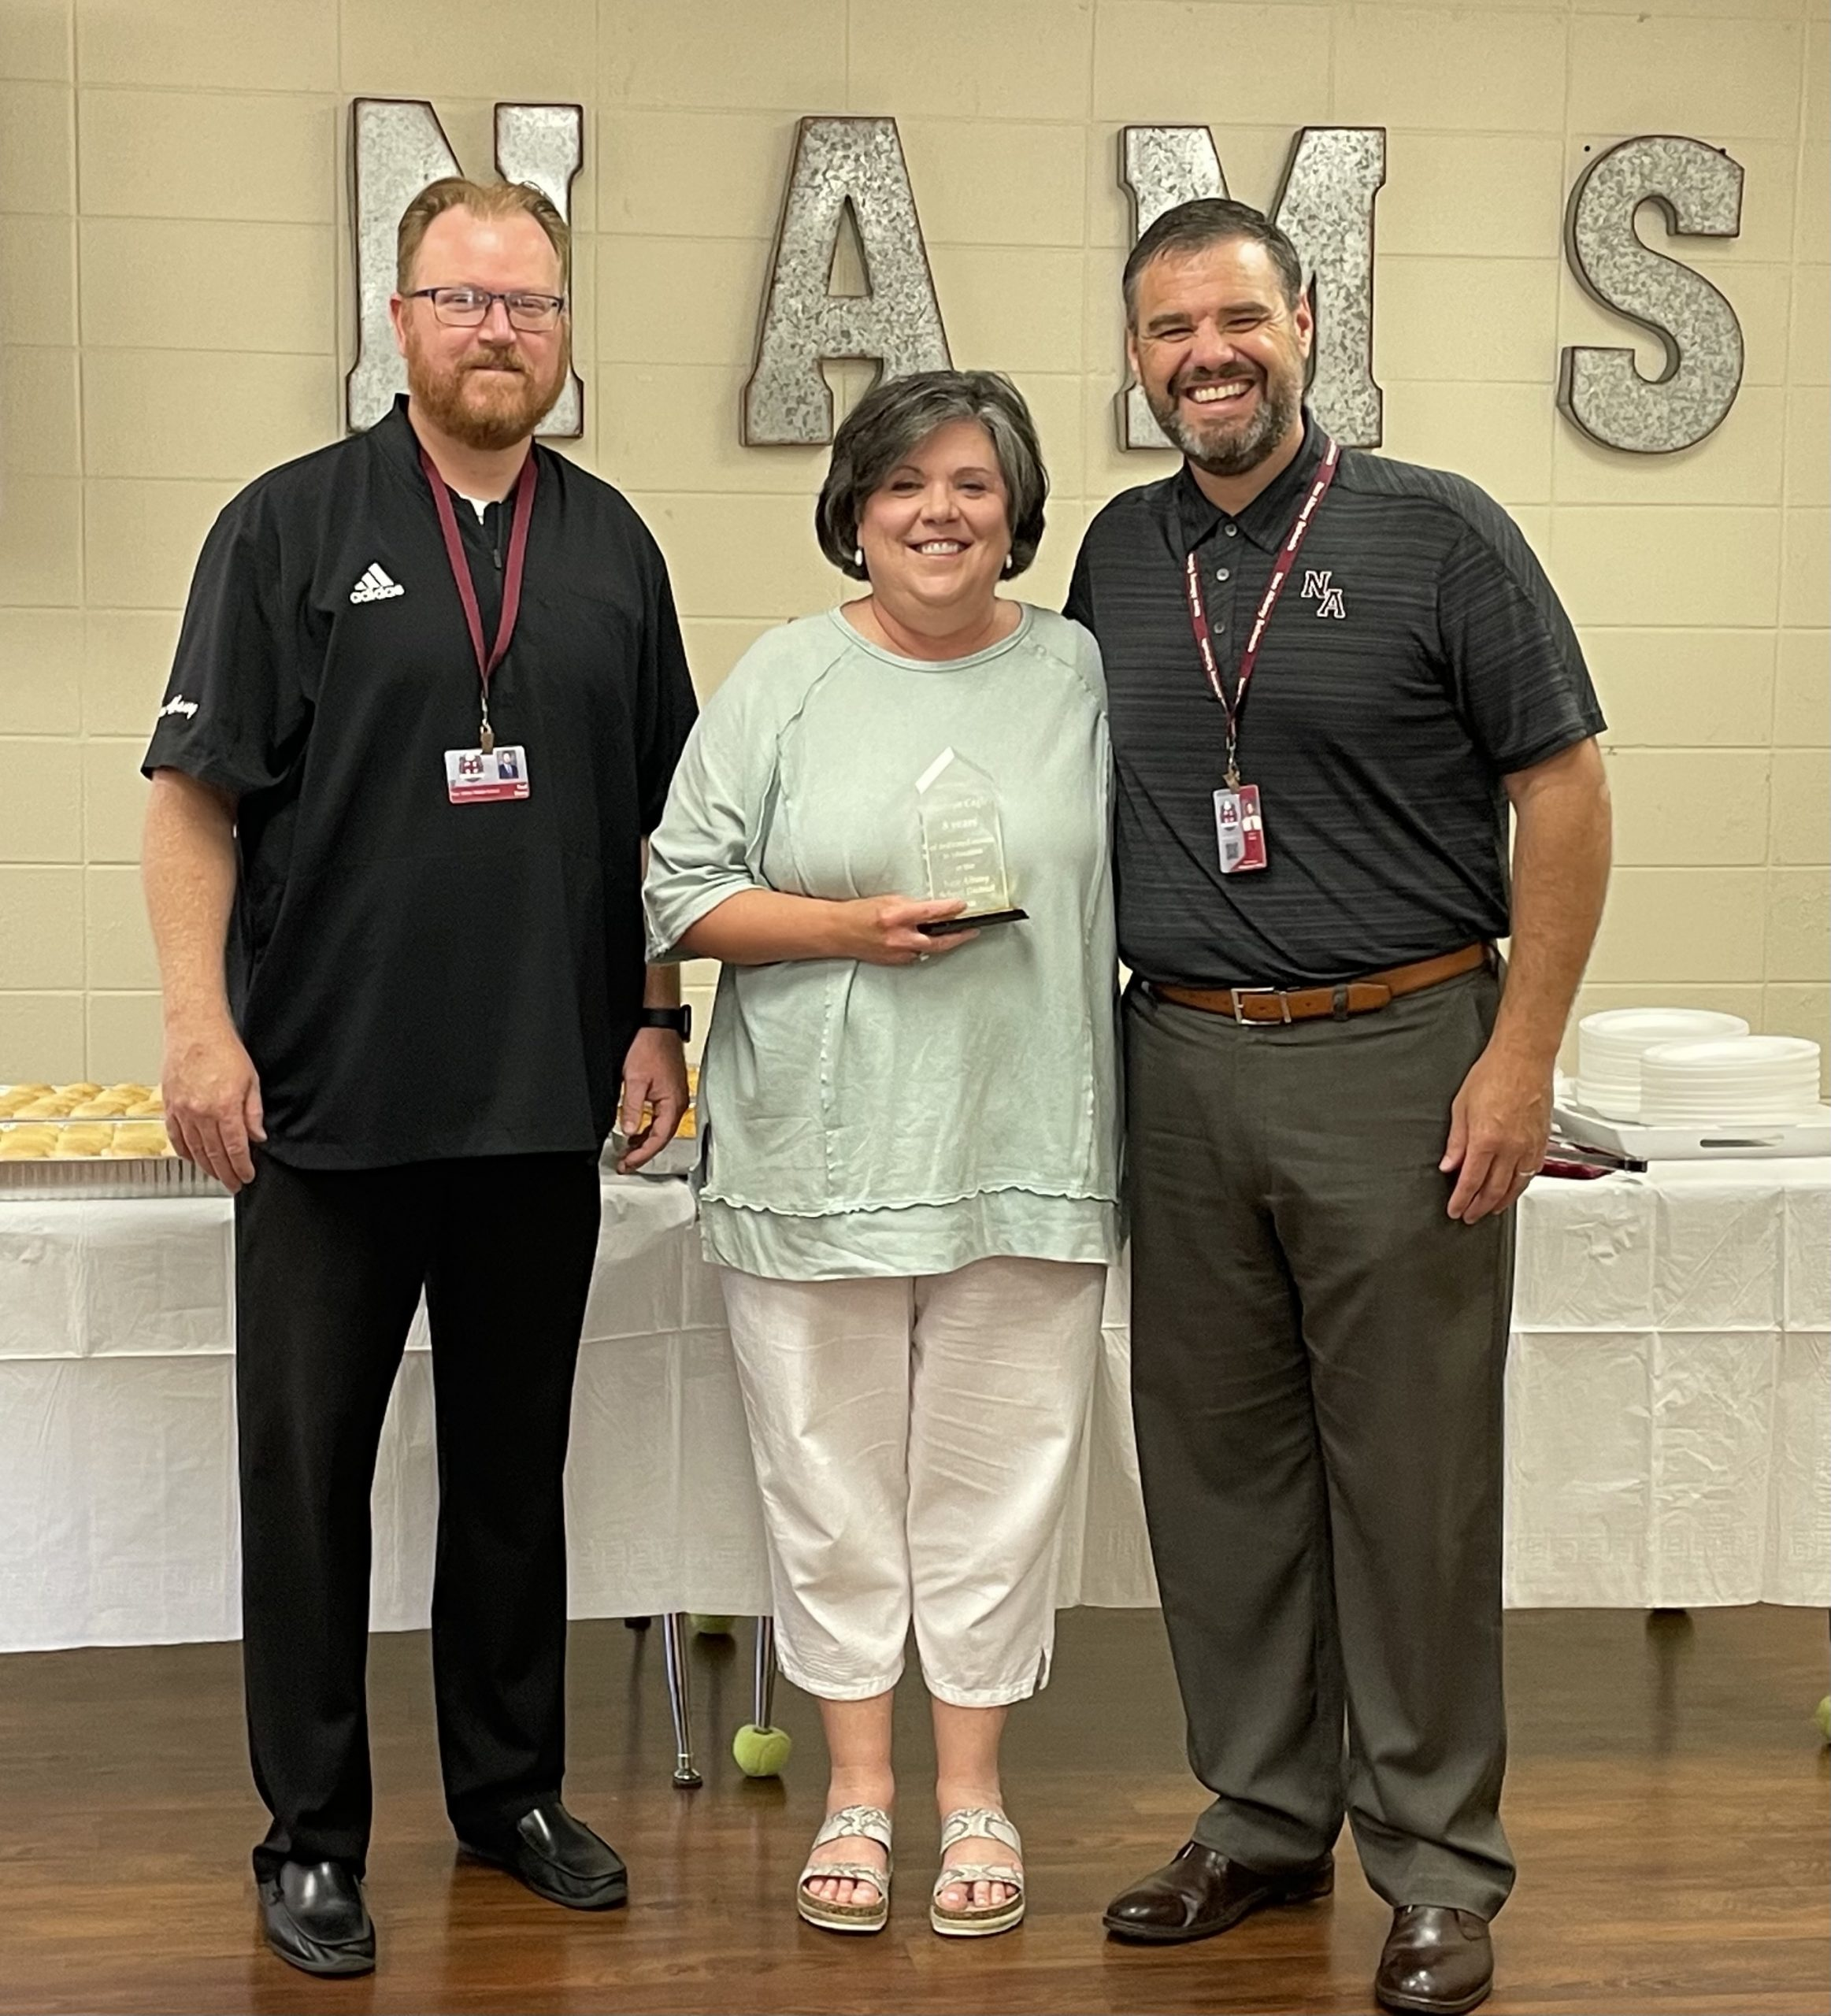 Kathryn Cagle - Retirement Luncheon